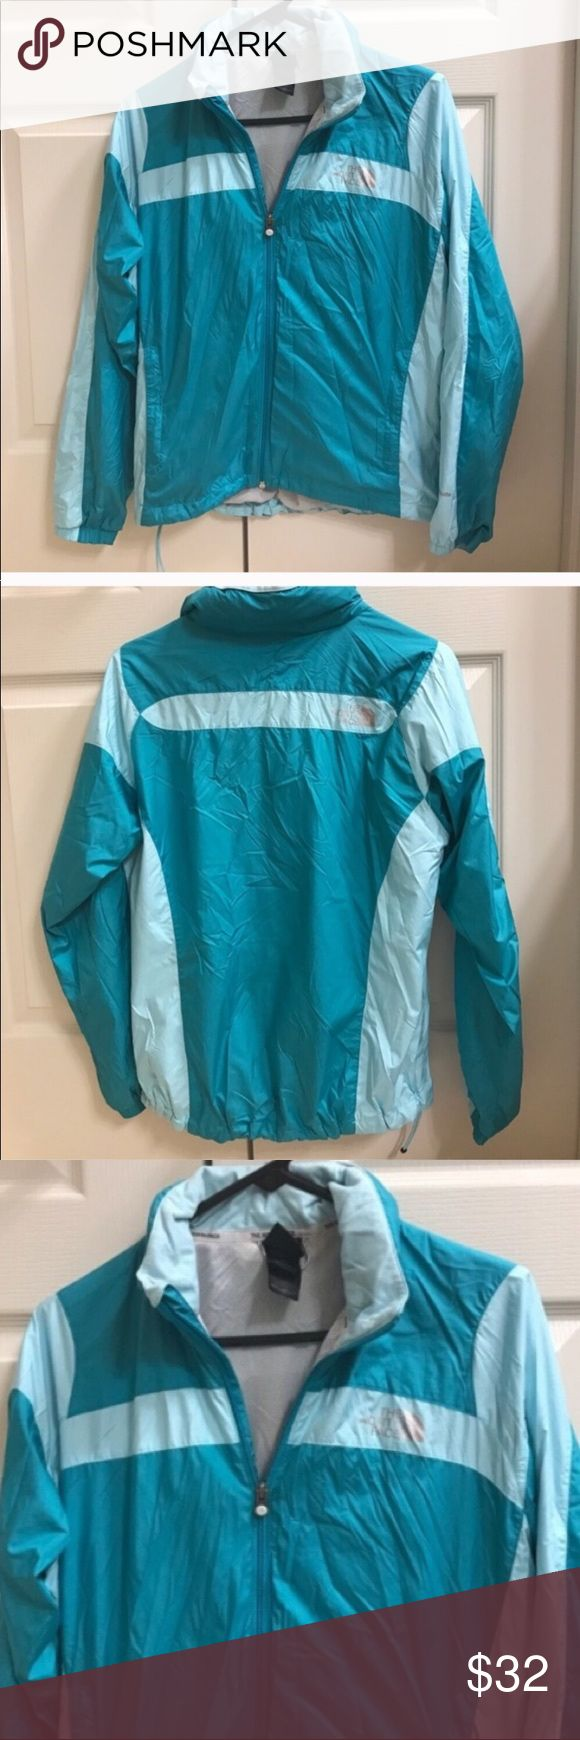 North Face blue rain jacket size S Size S North Face blue rain jacket. Blue bag. North Face Jackets & Coats